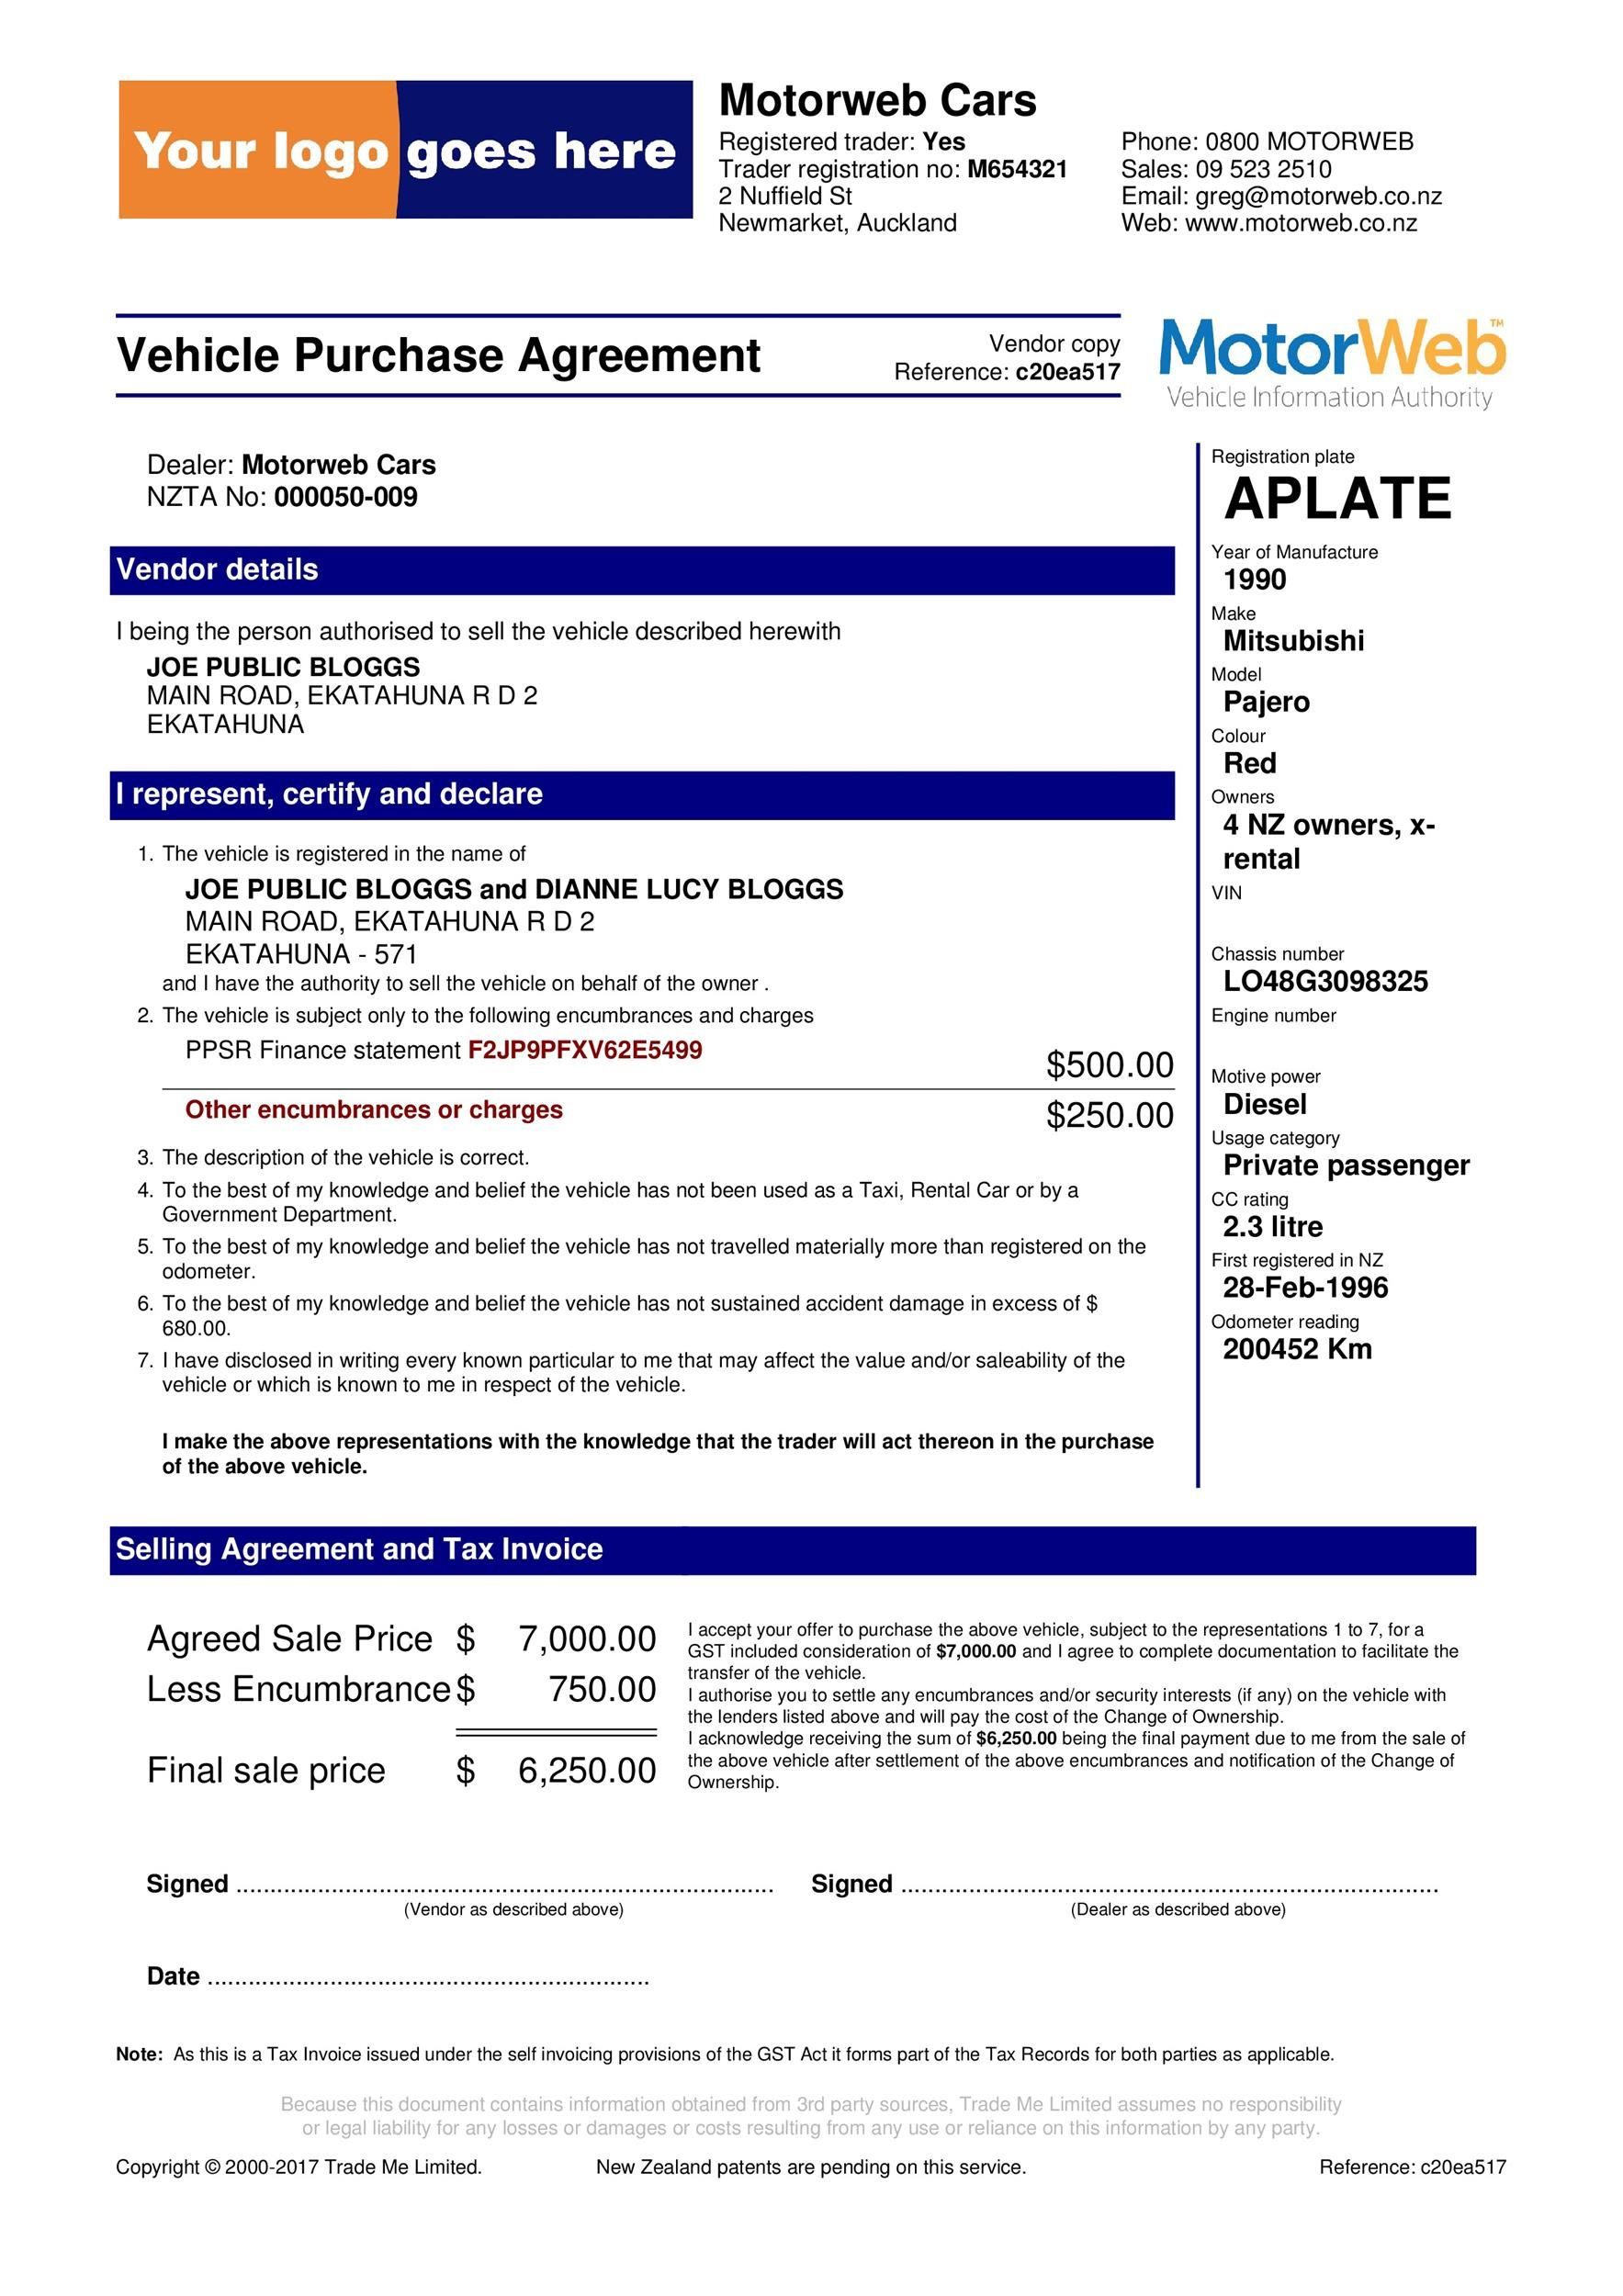 006 Surprising Vehicle Purchase Order Template Photo  Used Car MotorFull